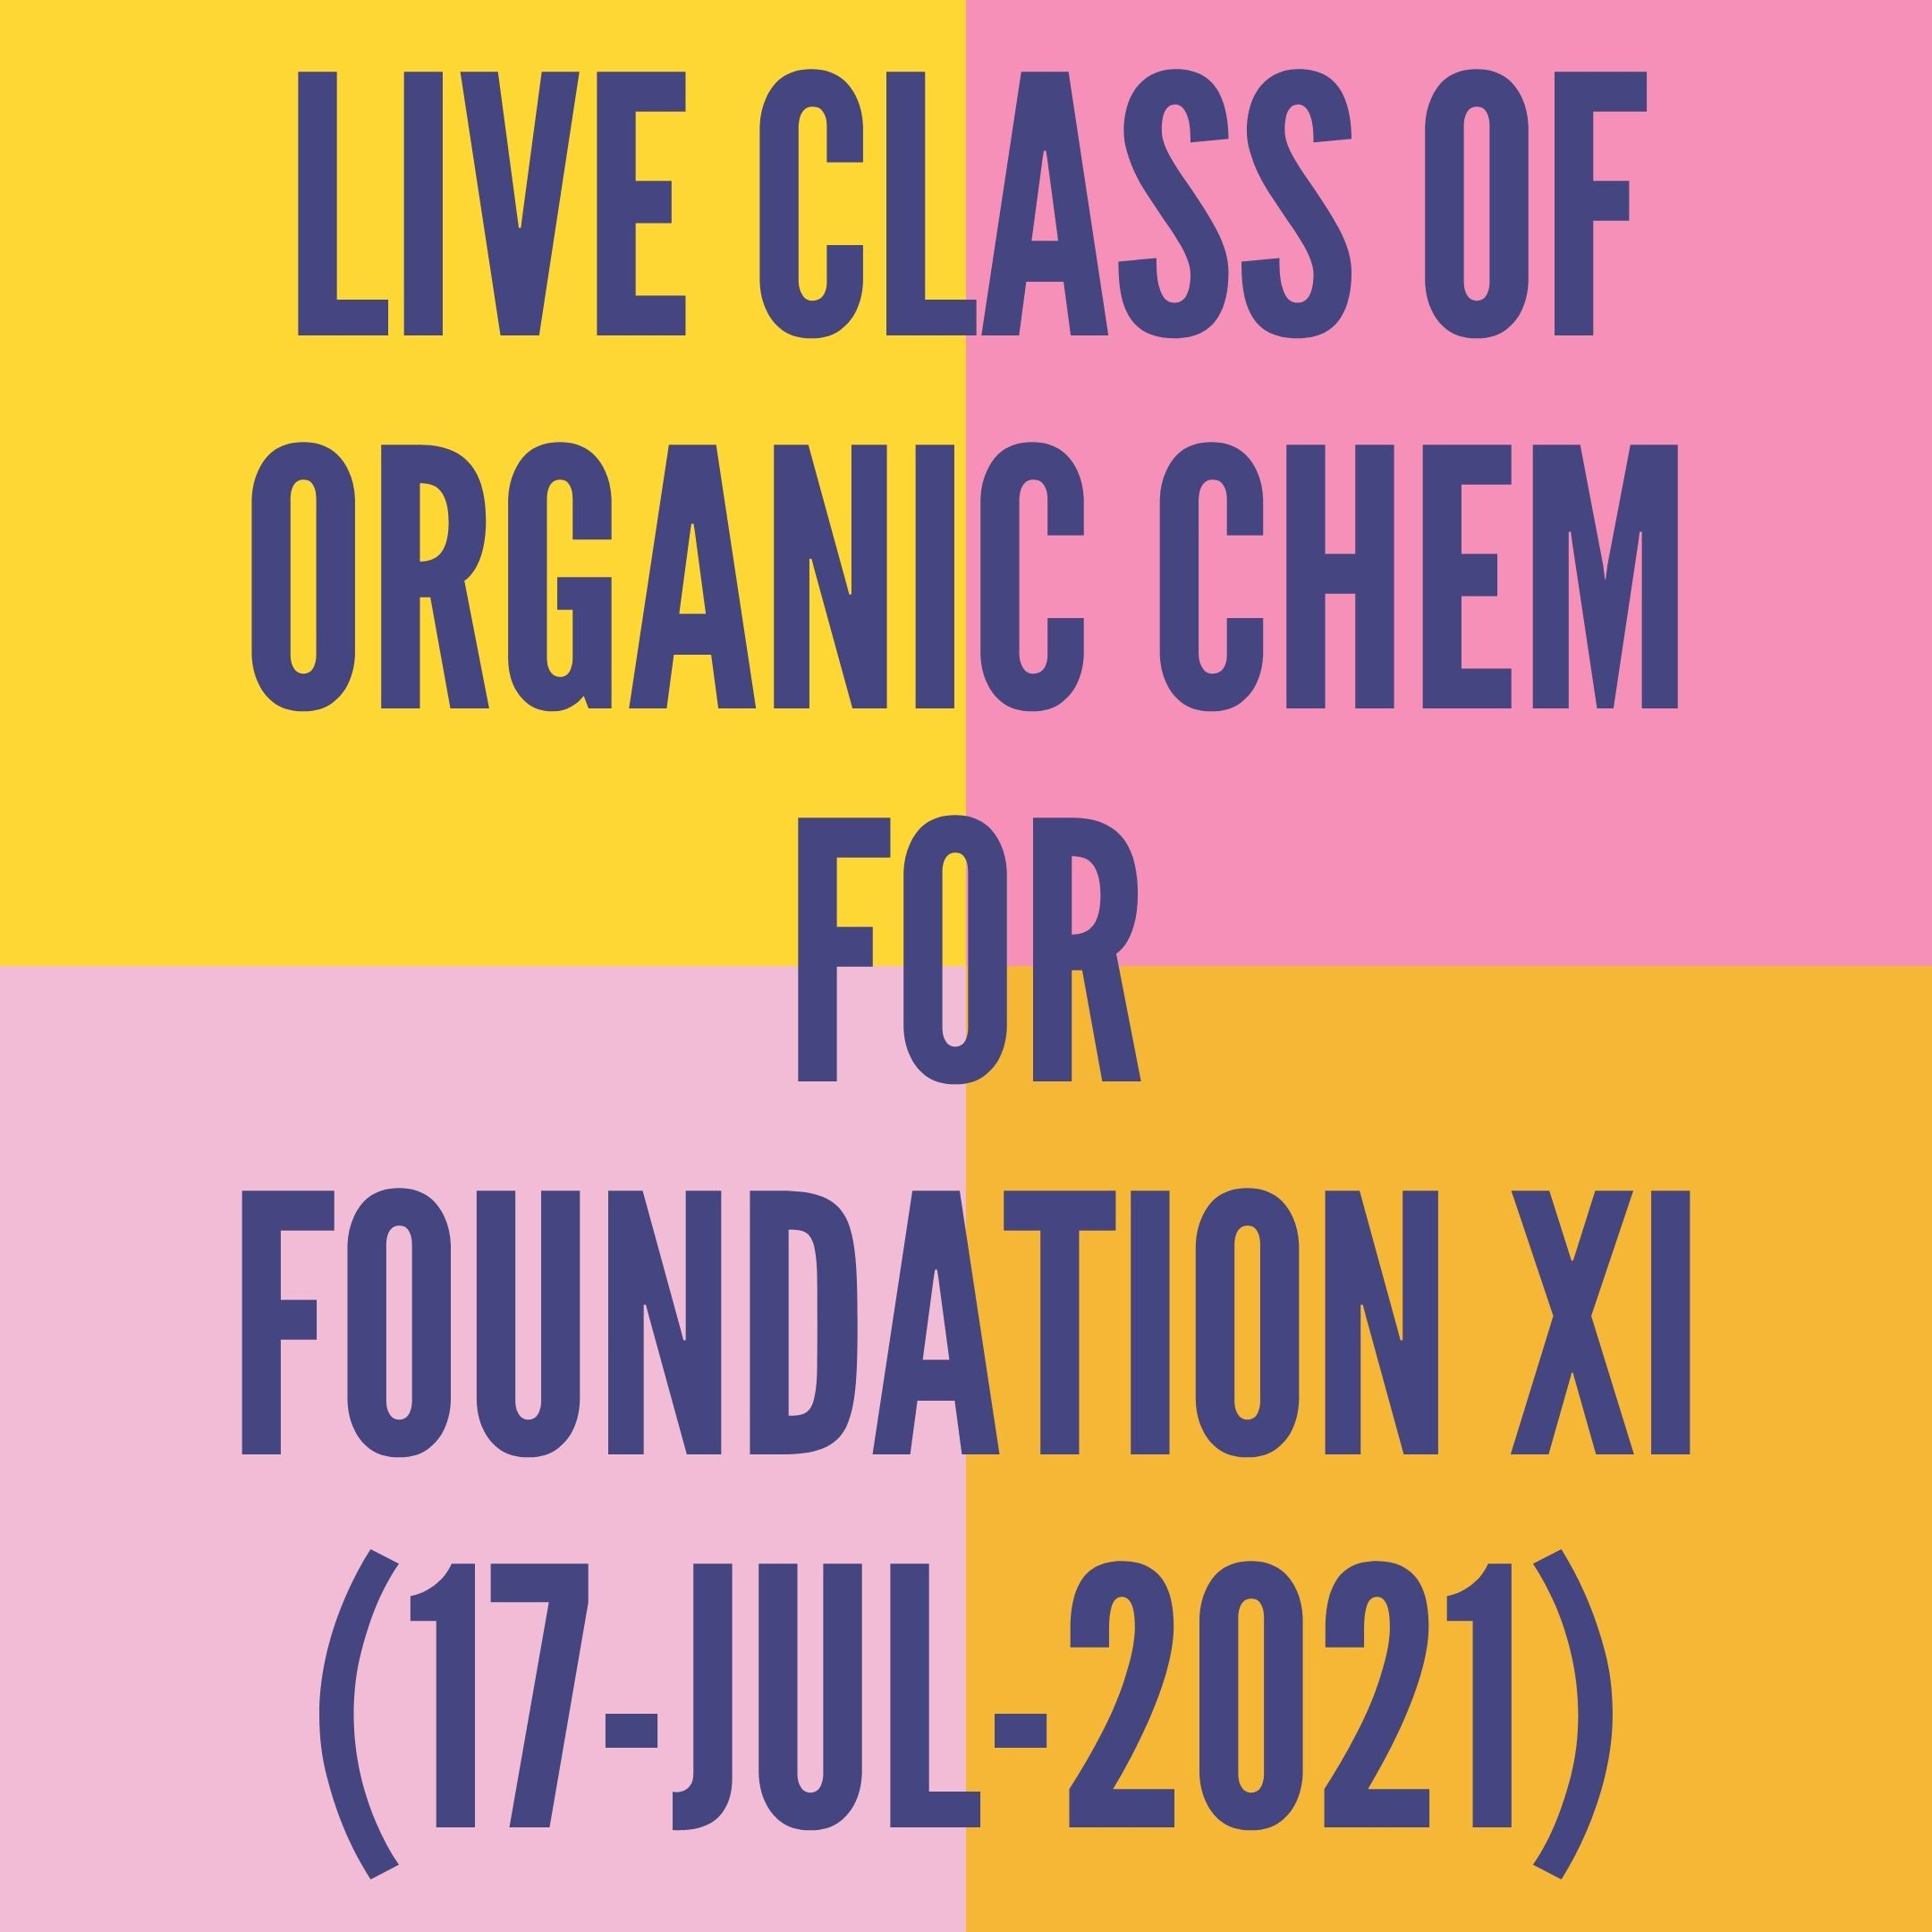 LIVE CLASS OF ORGANIC CHEMISTRY FOR FOUNDATION XI (17-JUL-2021) NOMENCLATURE